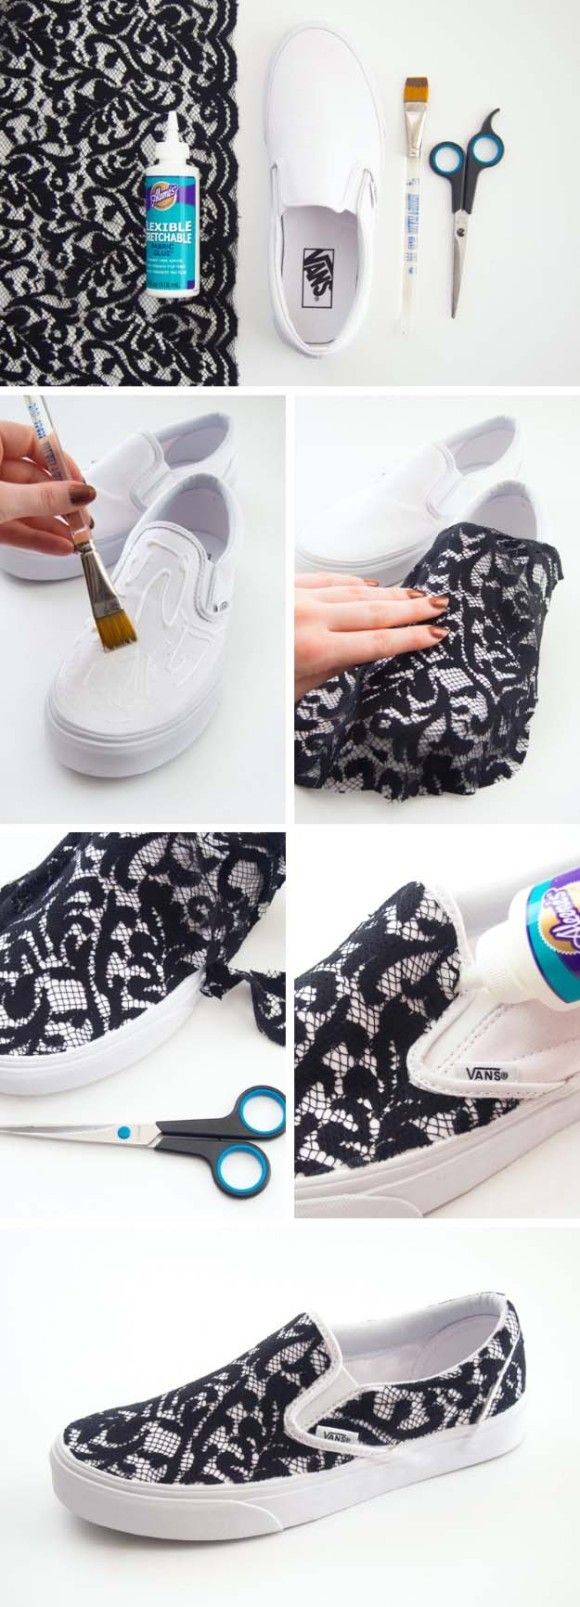 Cool DIY Fashion Ideas   Fun Do It Yourself Fashion projects   Learn how to refashion and sew jeans, T-shirts, skirts, and more   Lace Slip-on Sneakers   http://diyprojectsforteens.com/cool-diy-fashion-ideas/